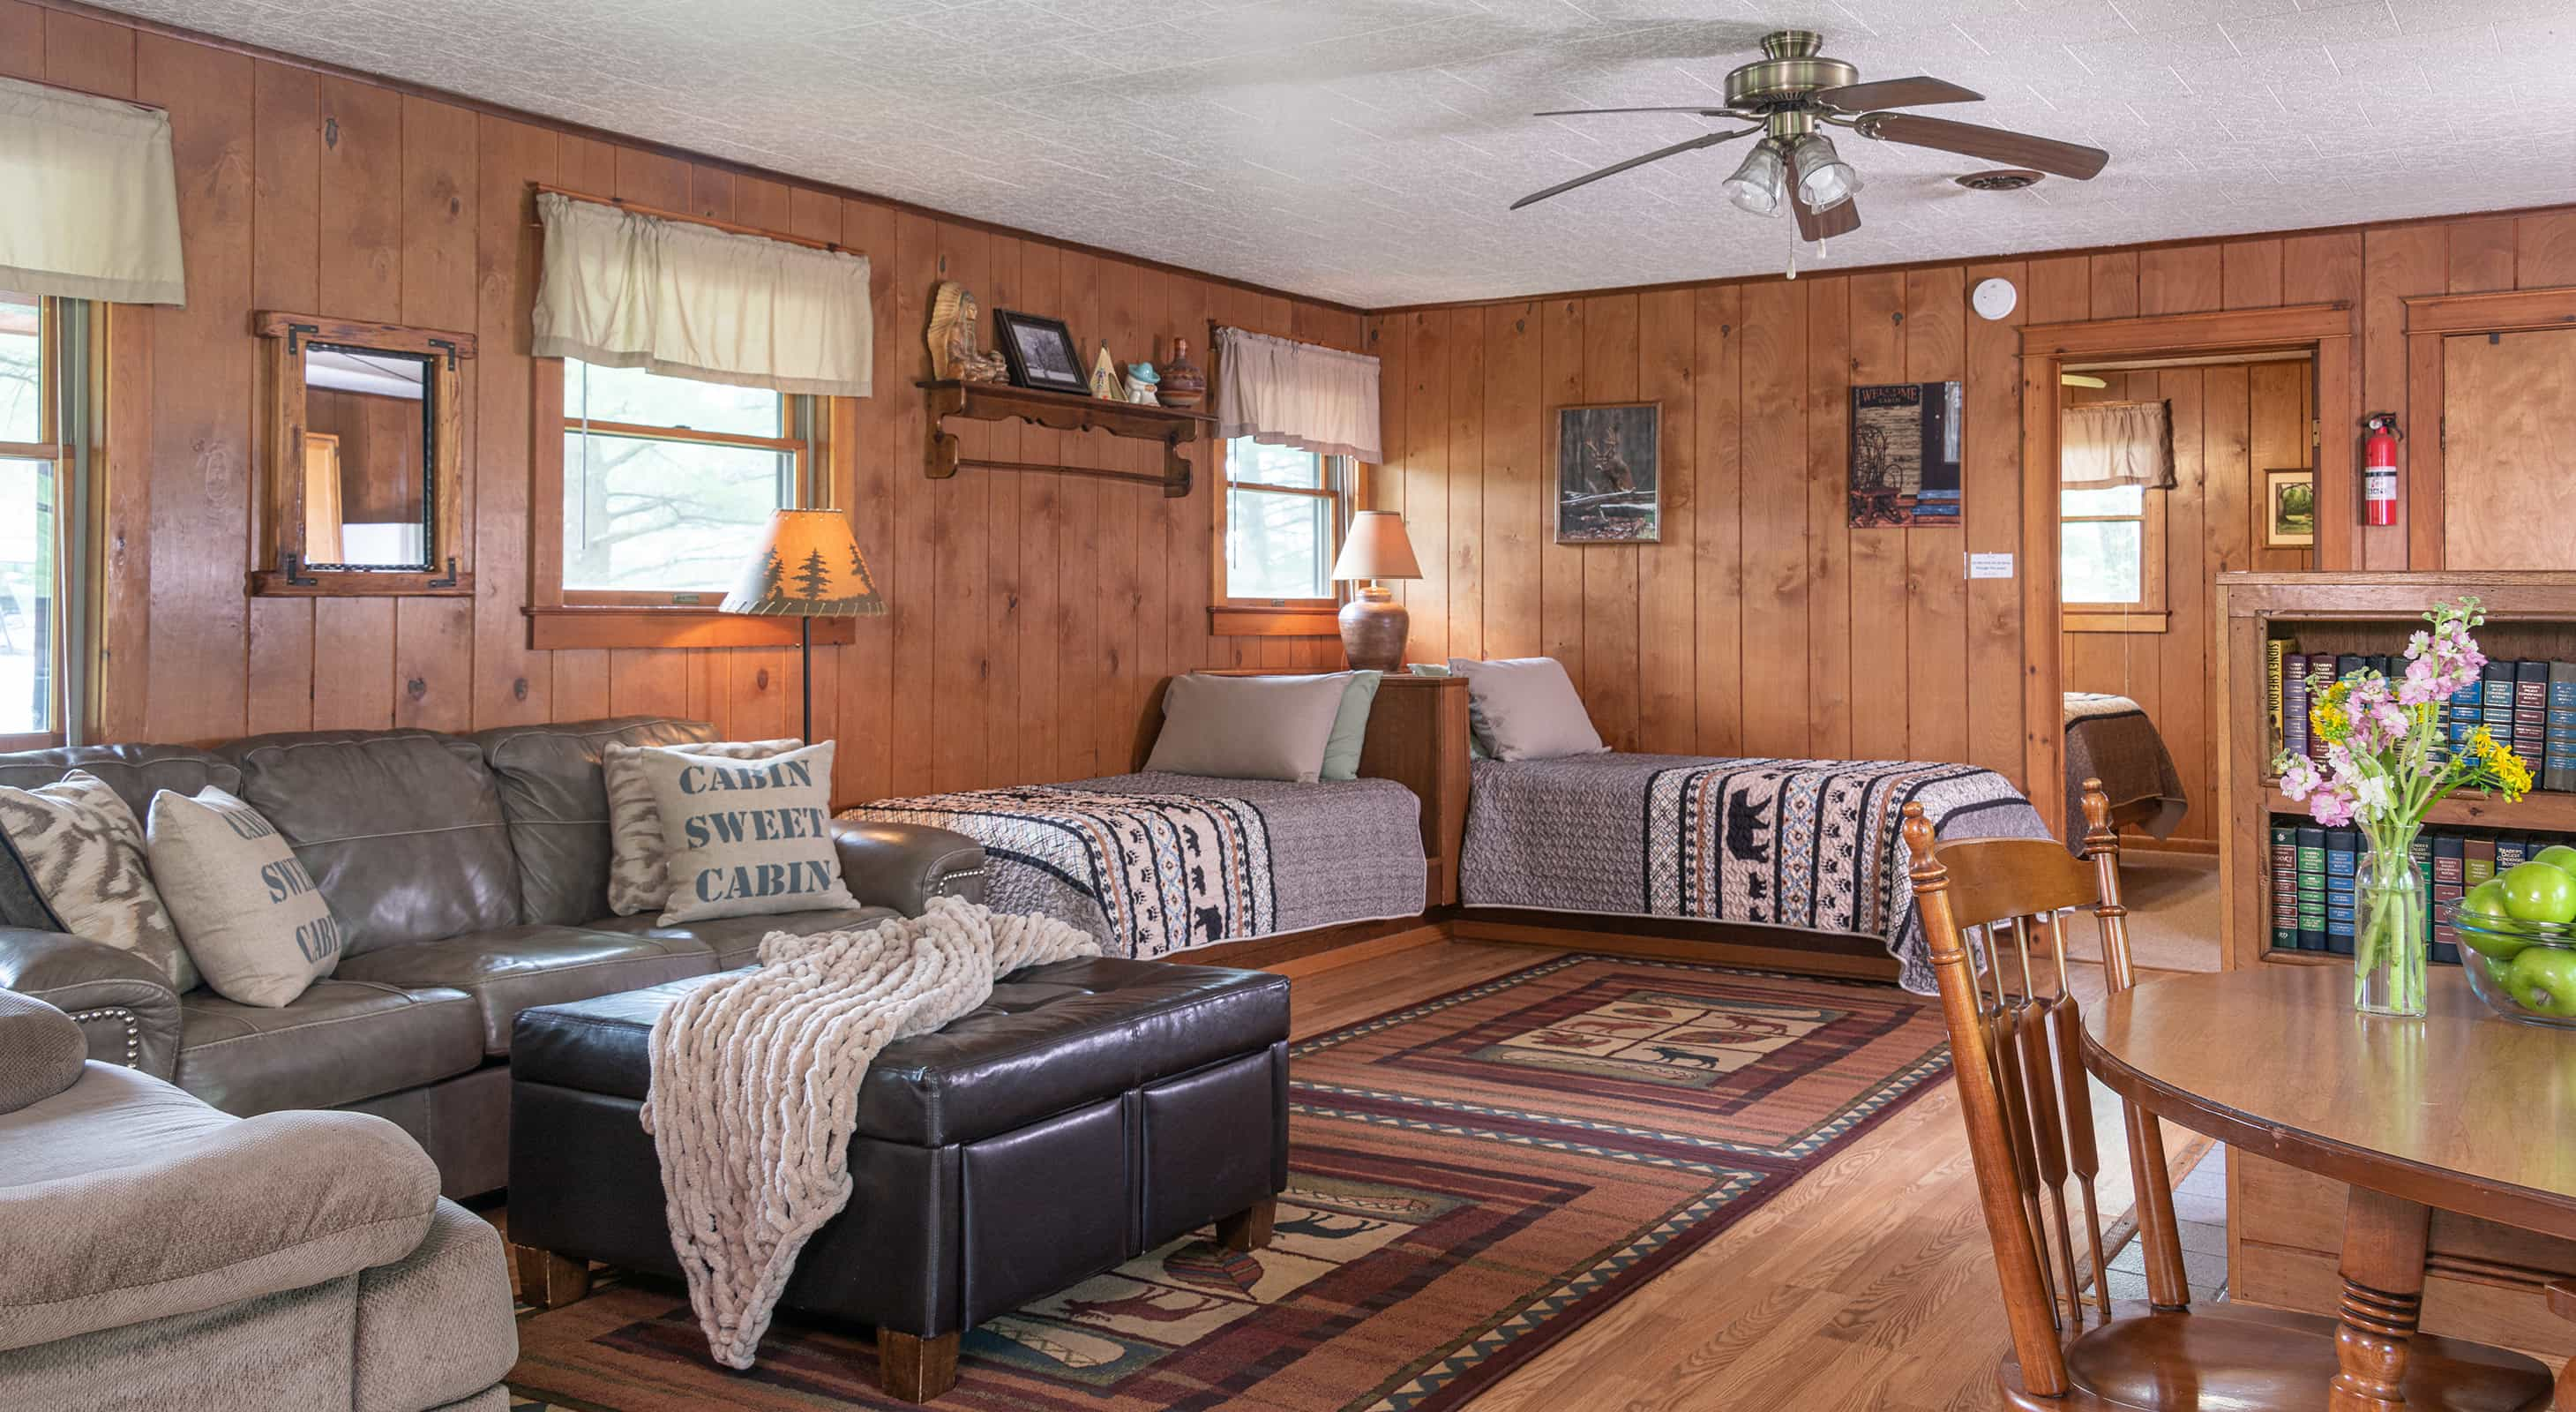 beds and couch in the Trading Post Cabin